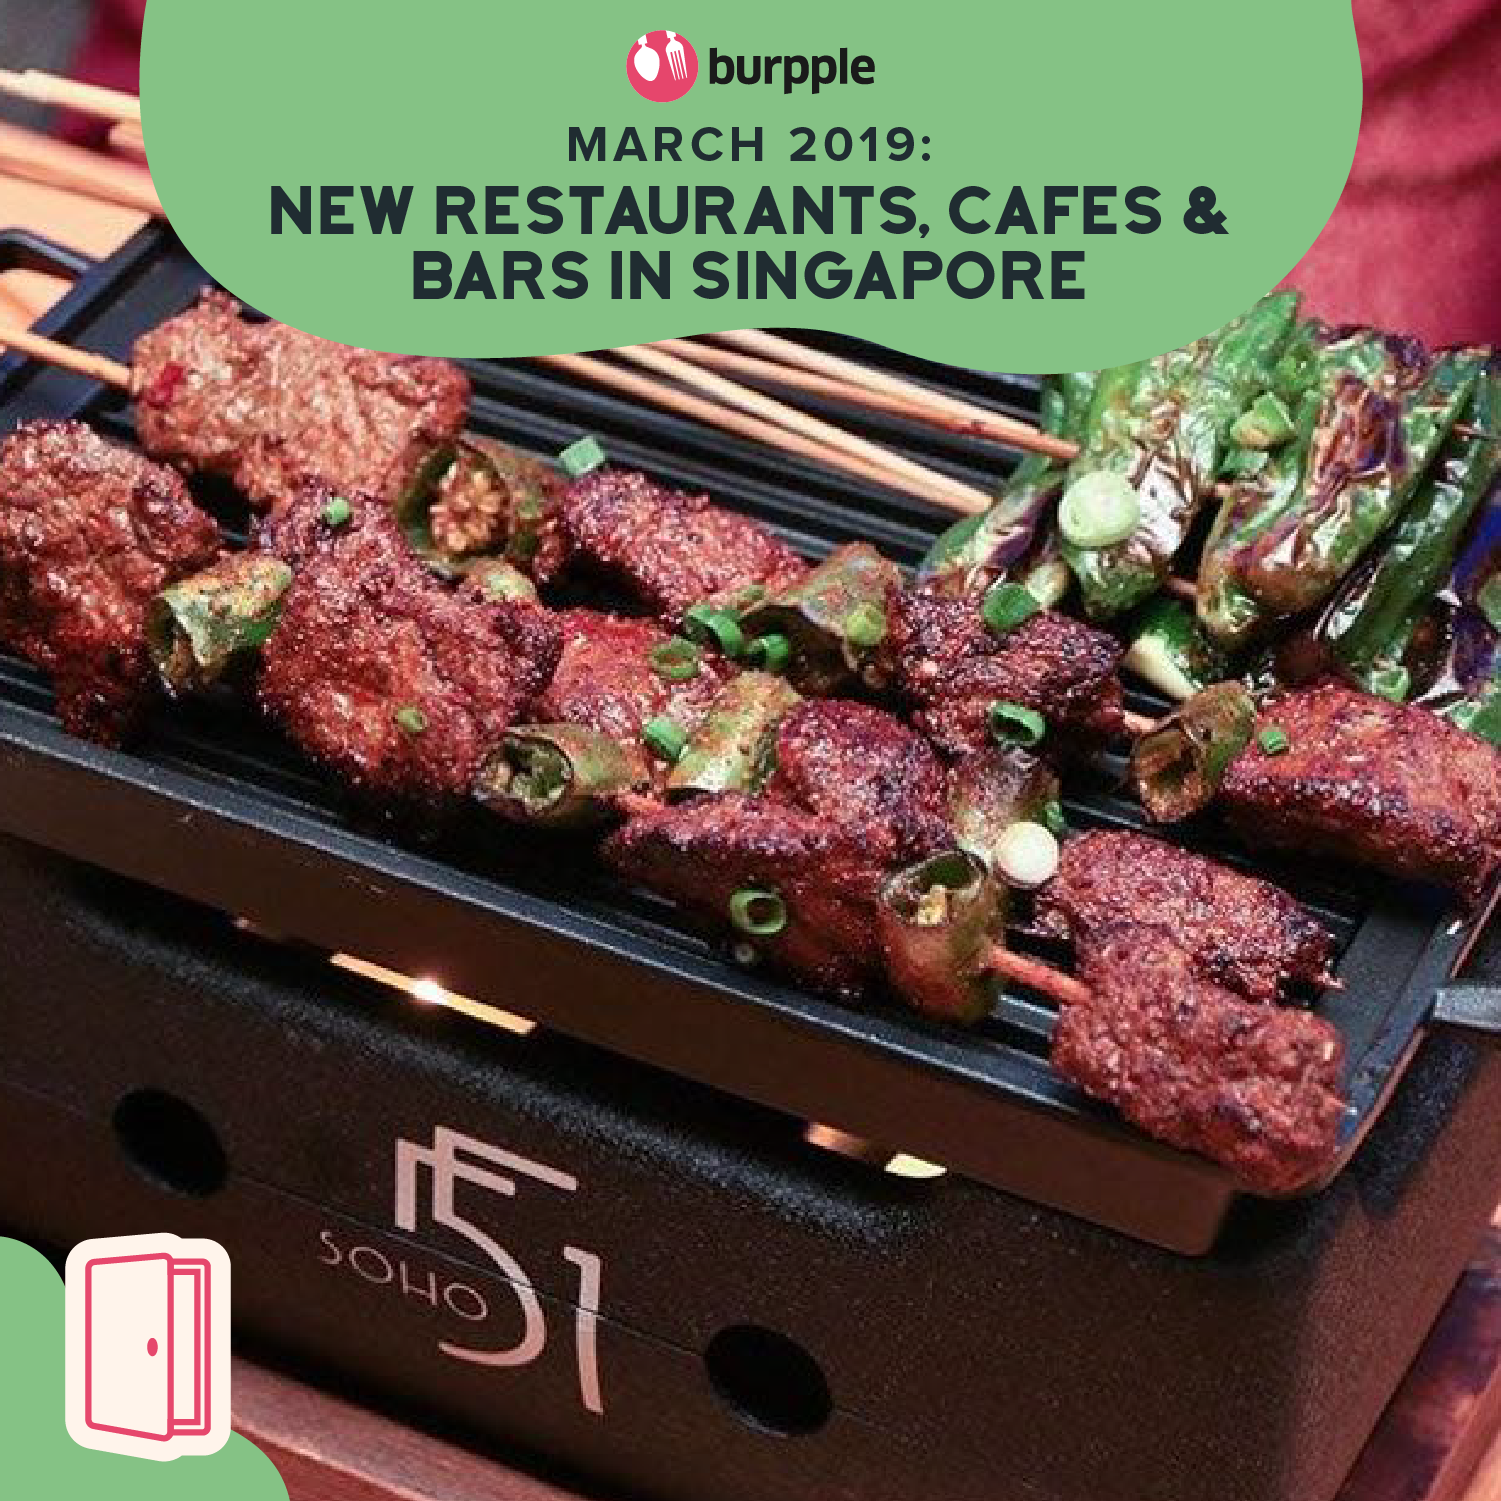 New Restaurants, Cafes & Bars in Singapore: March 2019